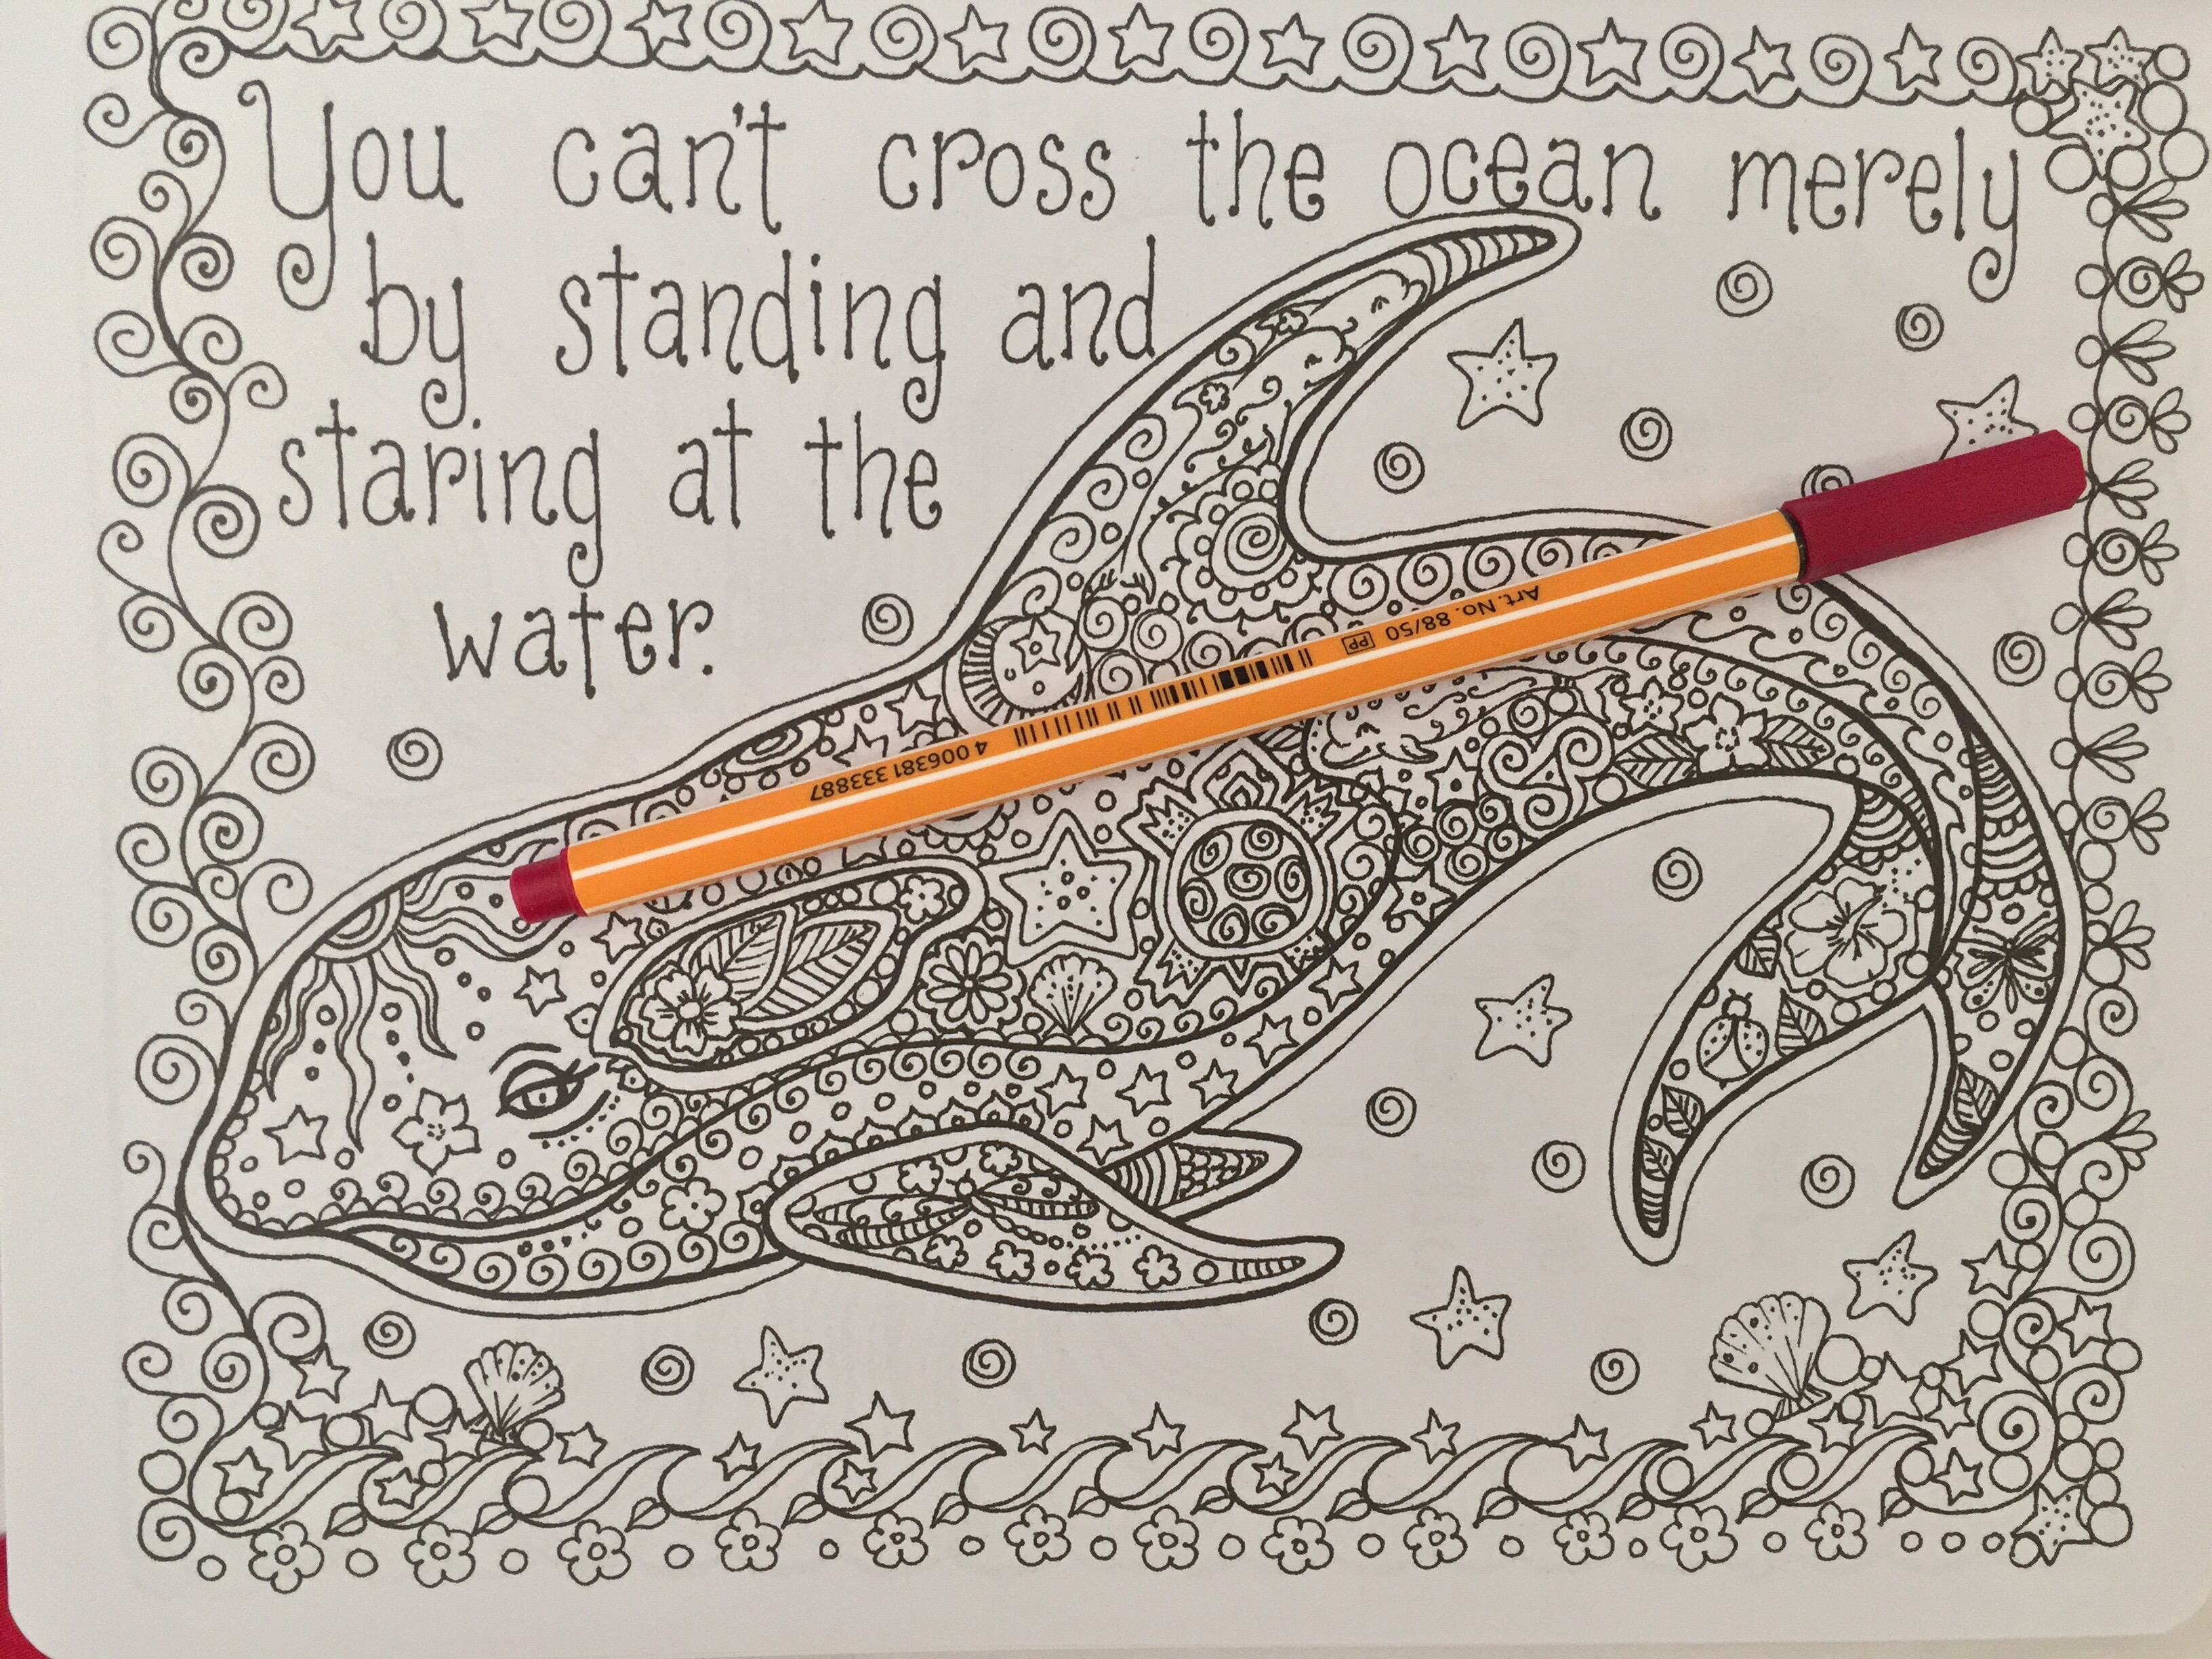 Posh coloring book art therapy for fun relaxation -  Coloring Inspirational Quotes Adult Colouring Therapy Stress Relief Art Therapy Managament Colour Color Pencils Reviews Books